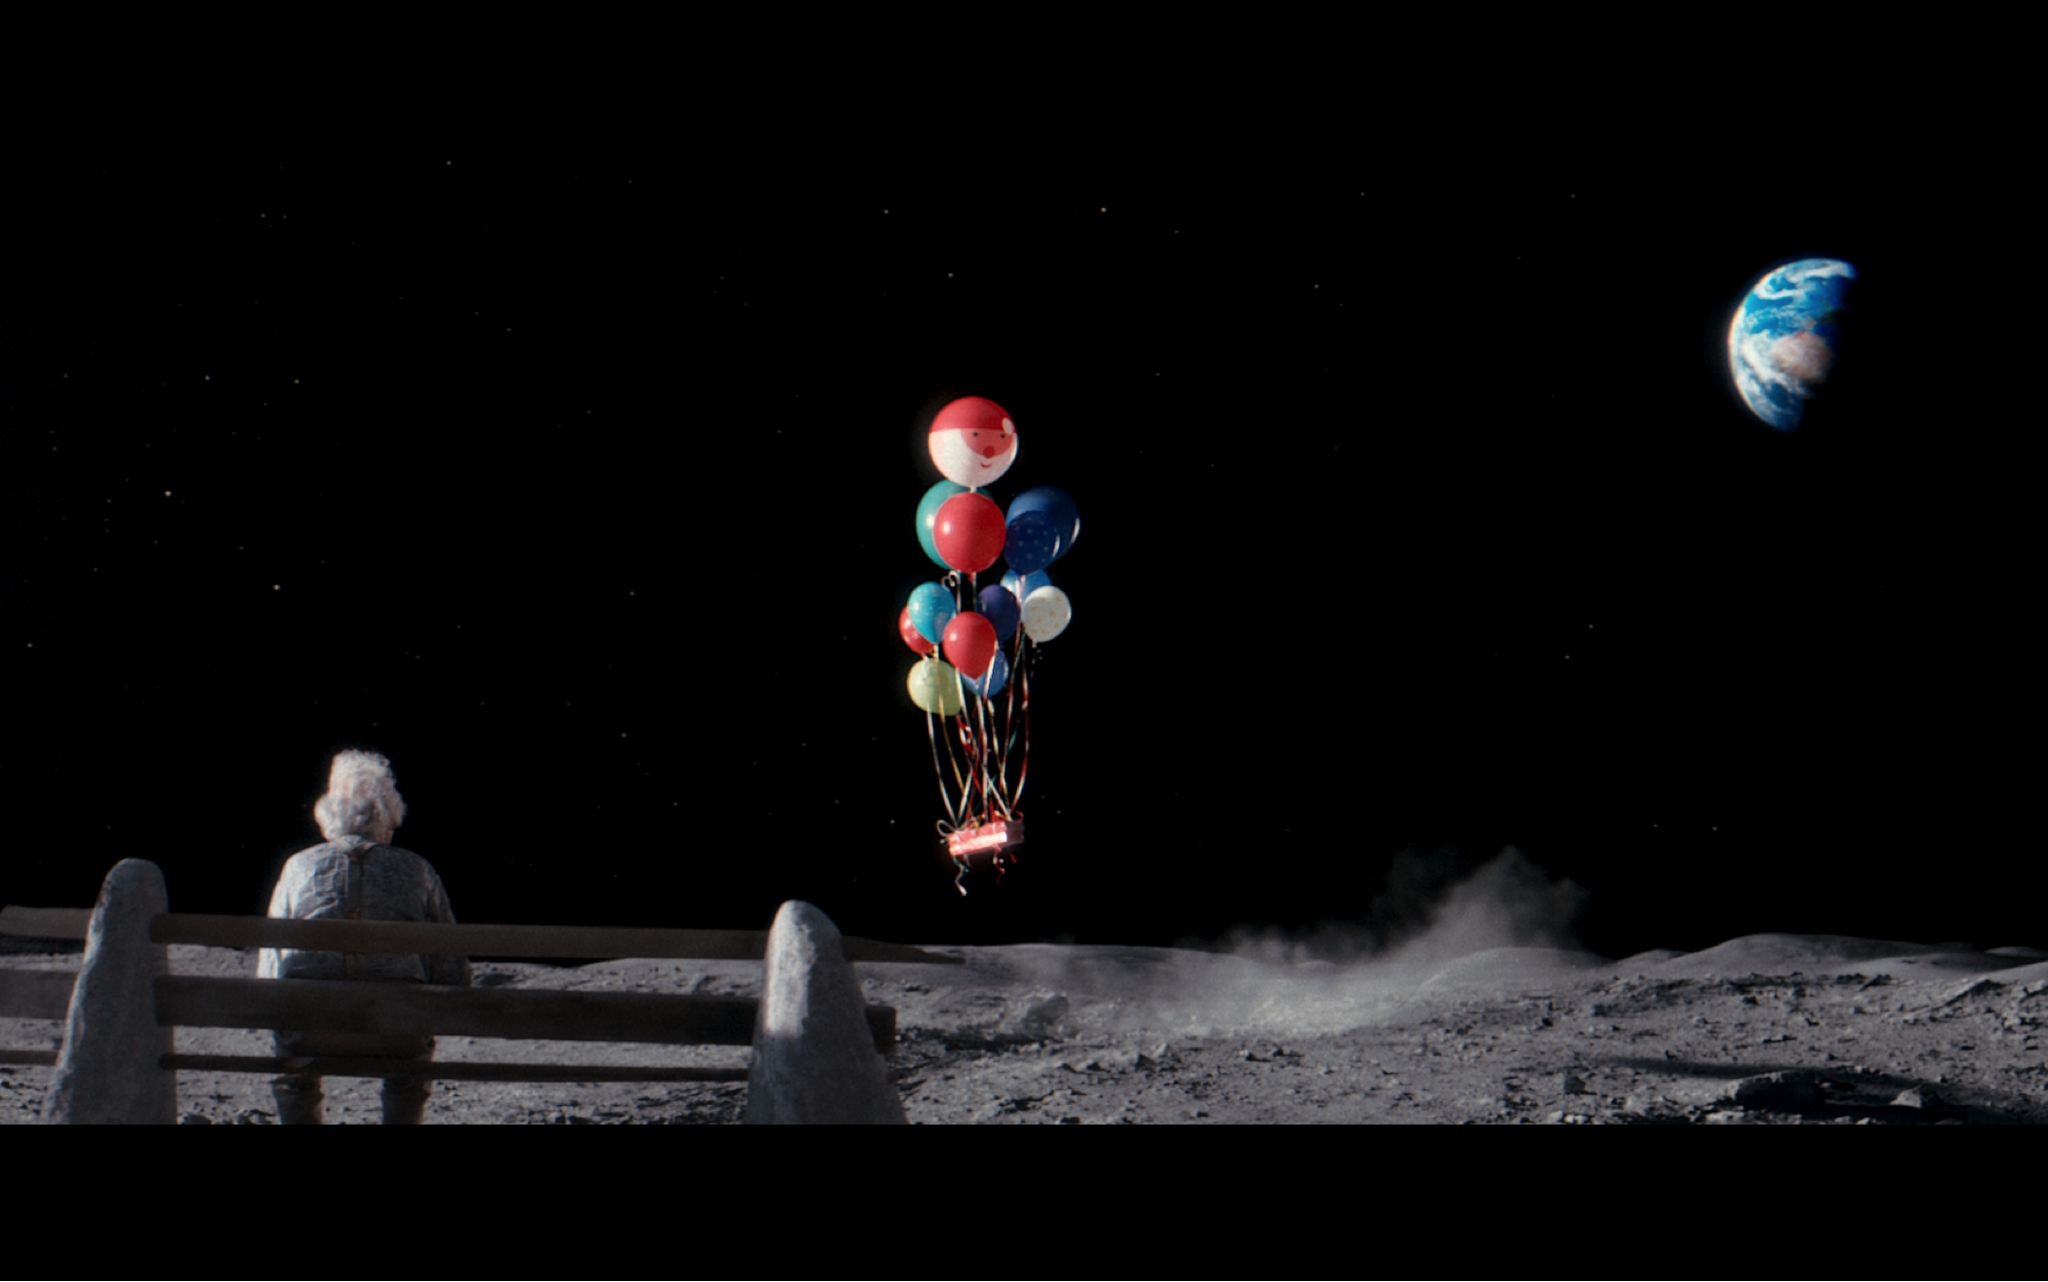 They put a man on the moon! @RichardKameleon shares his thoughts on this years Christmas ads https://t.co/IMjmxuJ4Tr https://t.co/1huESg8Hmx